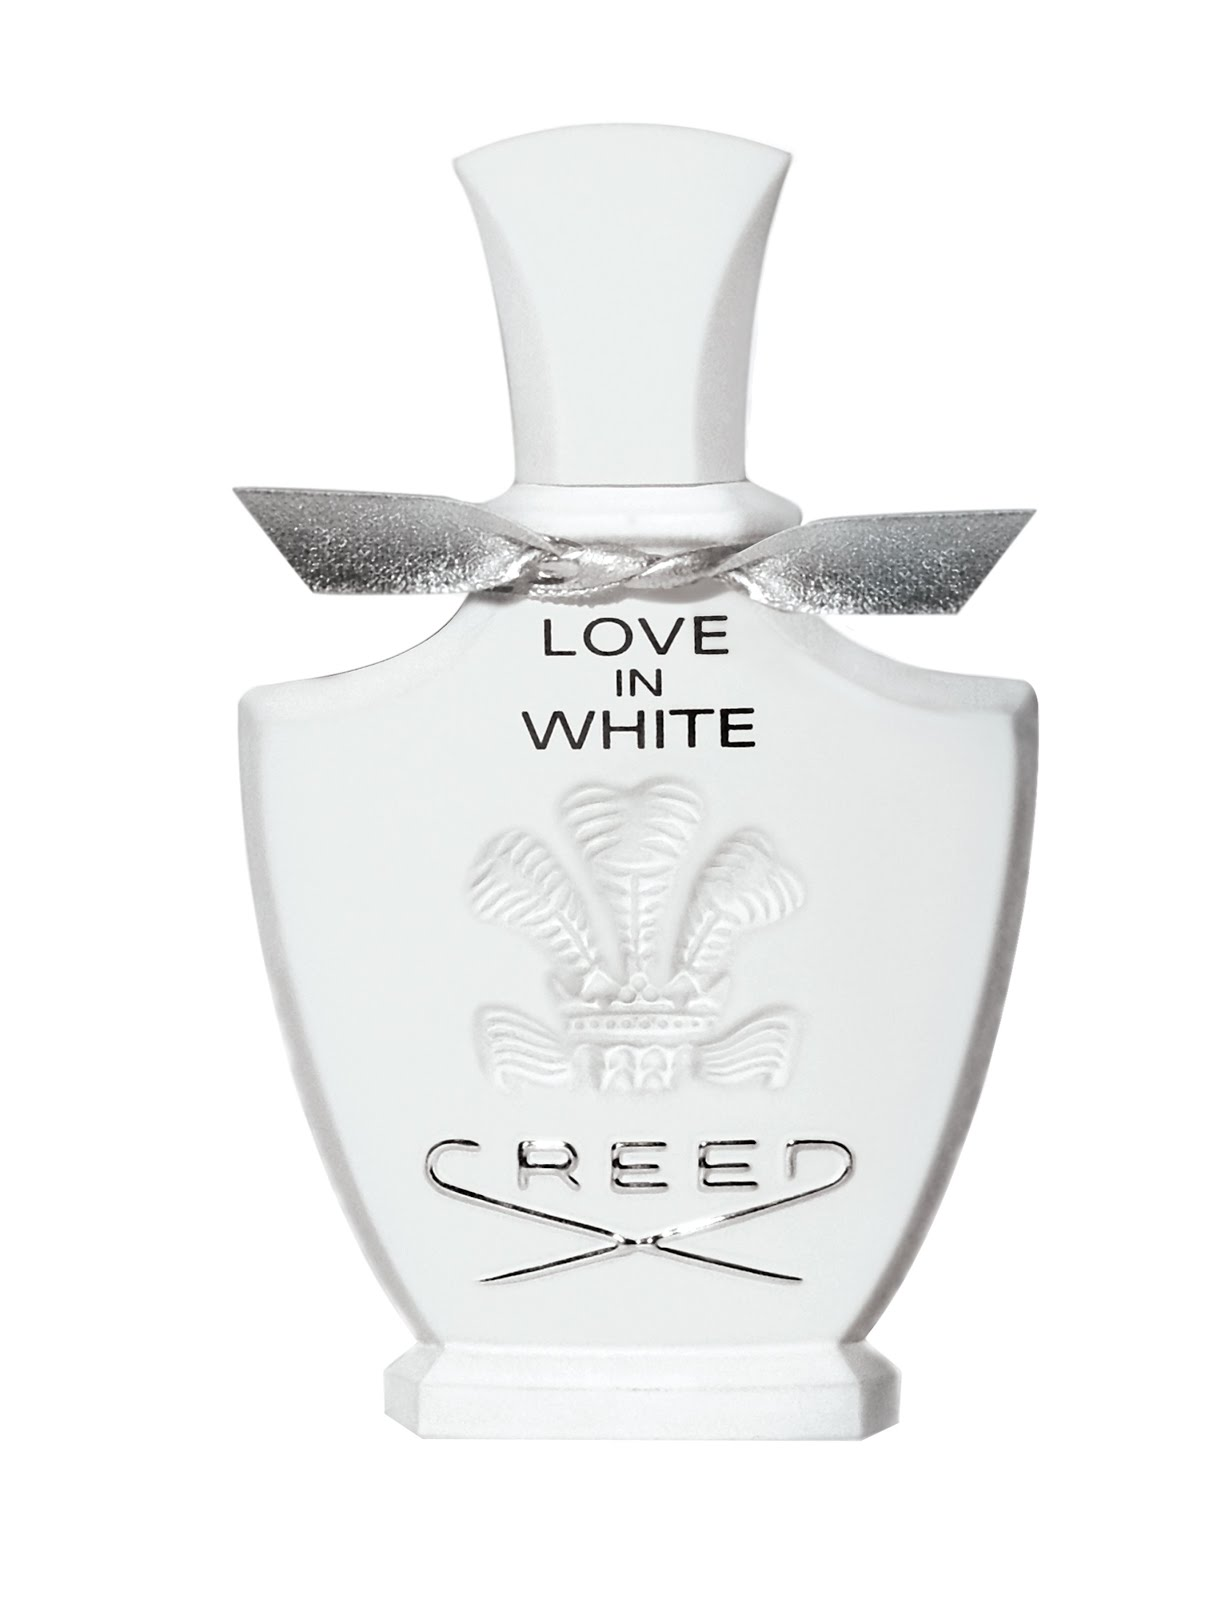 From Pyrgos Love In White Creed